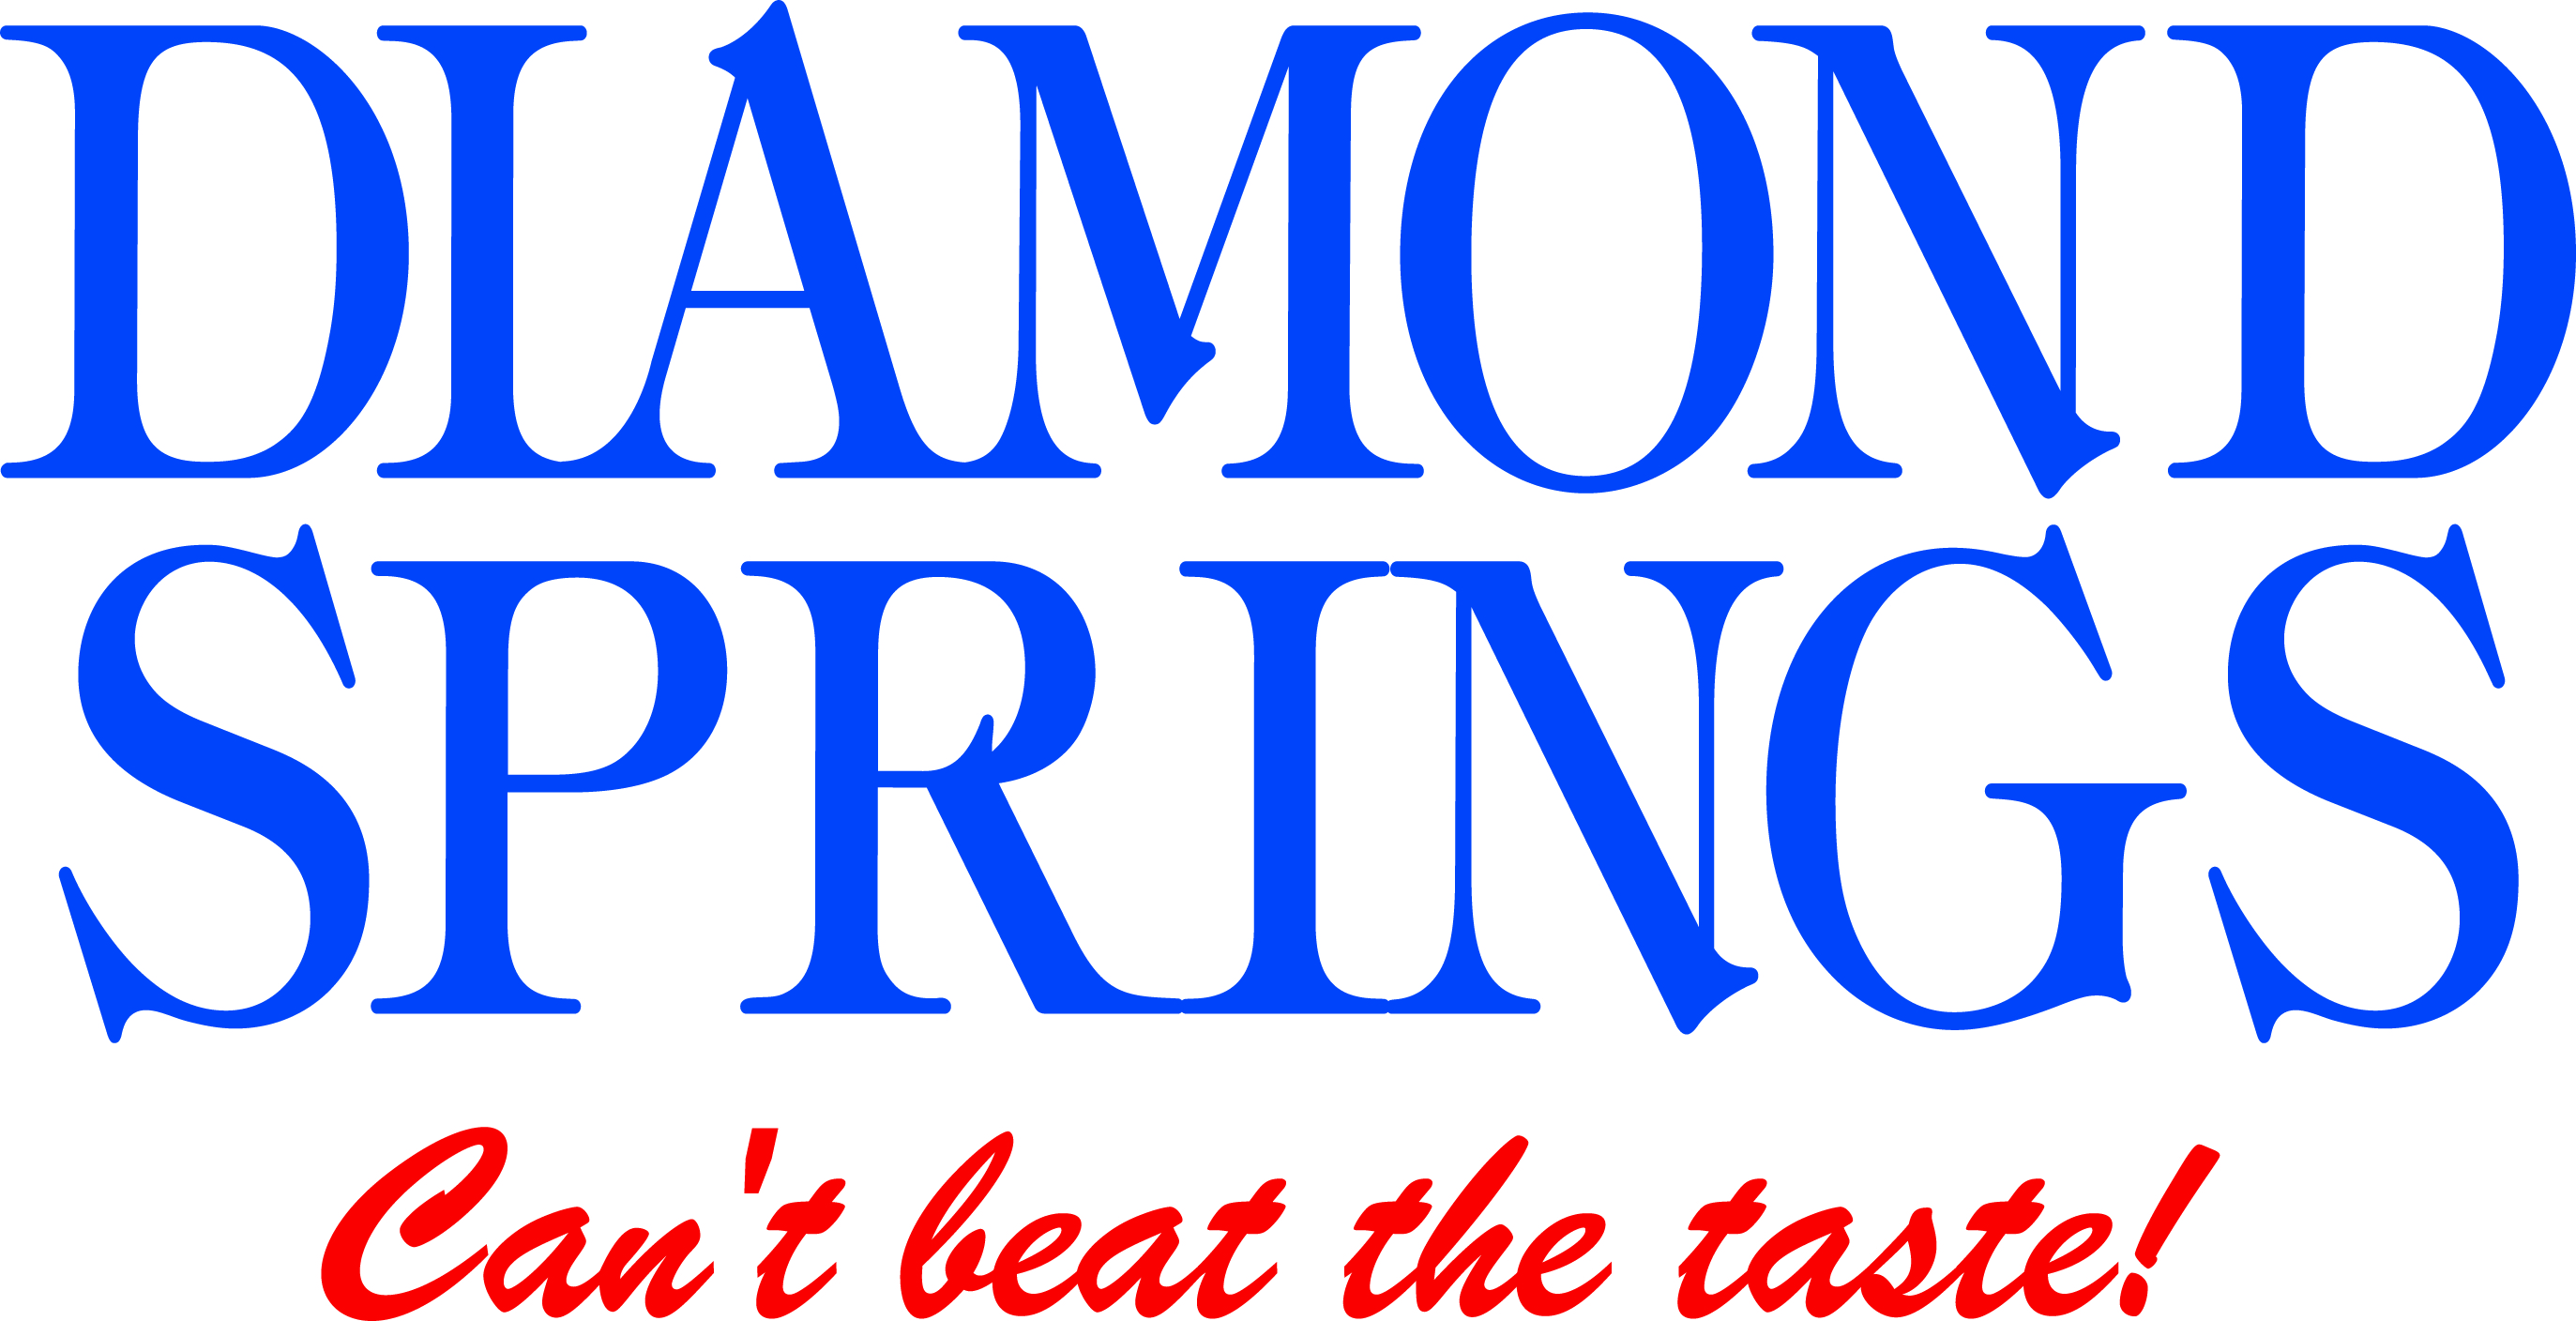 Sponsor Diamond Springs Water